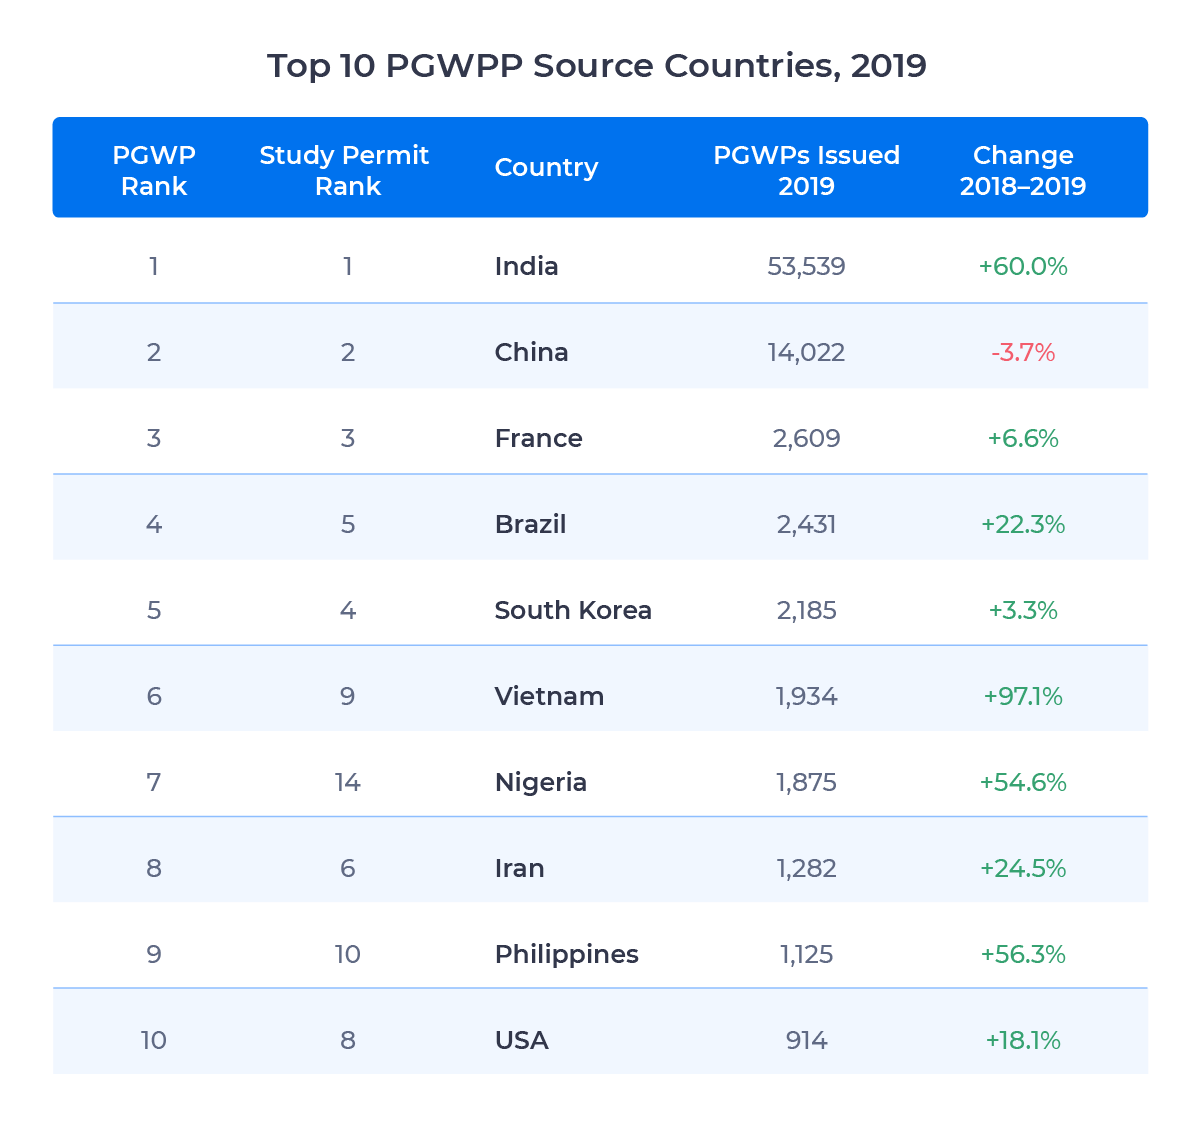 Table showing the top 10 source countries for PGWPs issued in 2019. Examined in detail below.